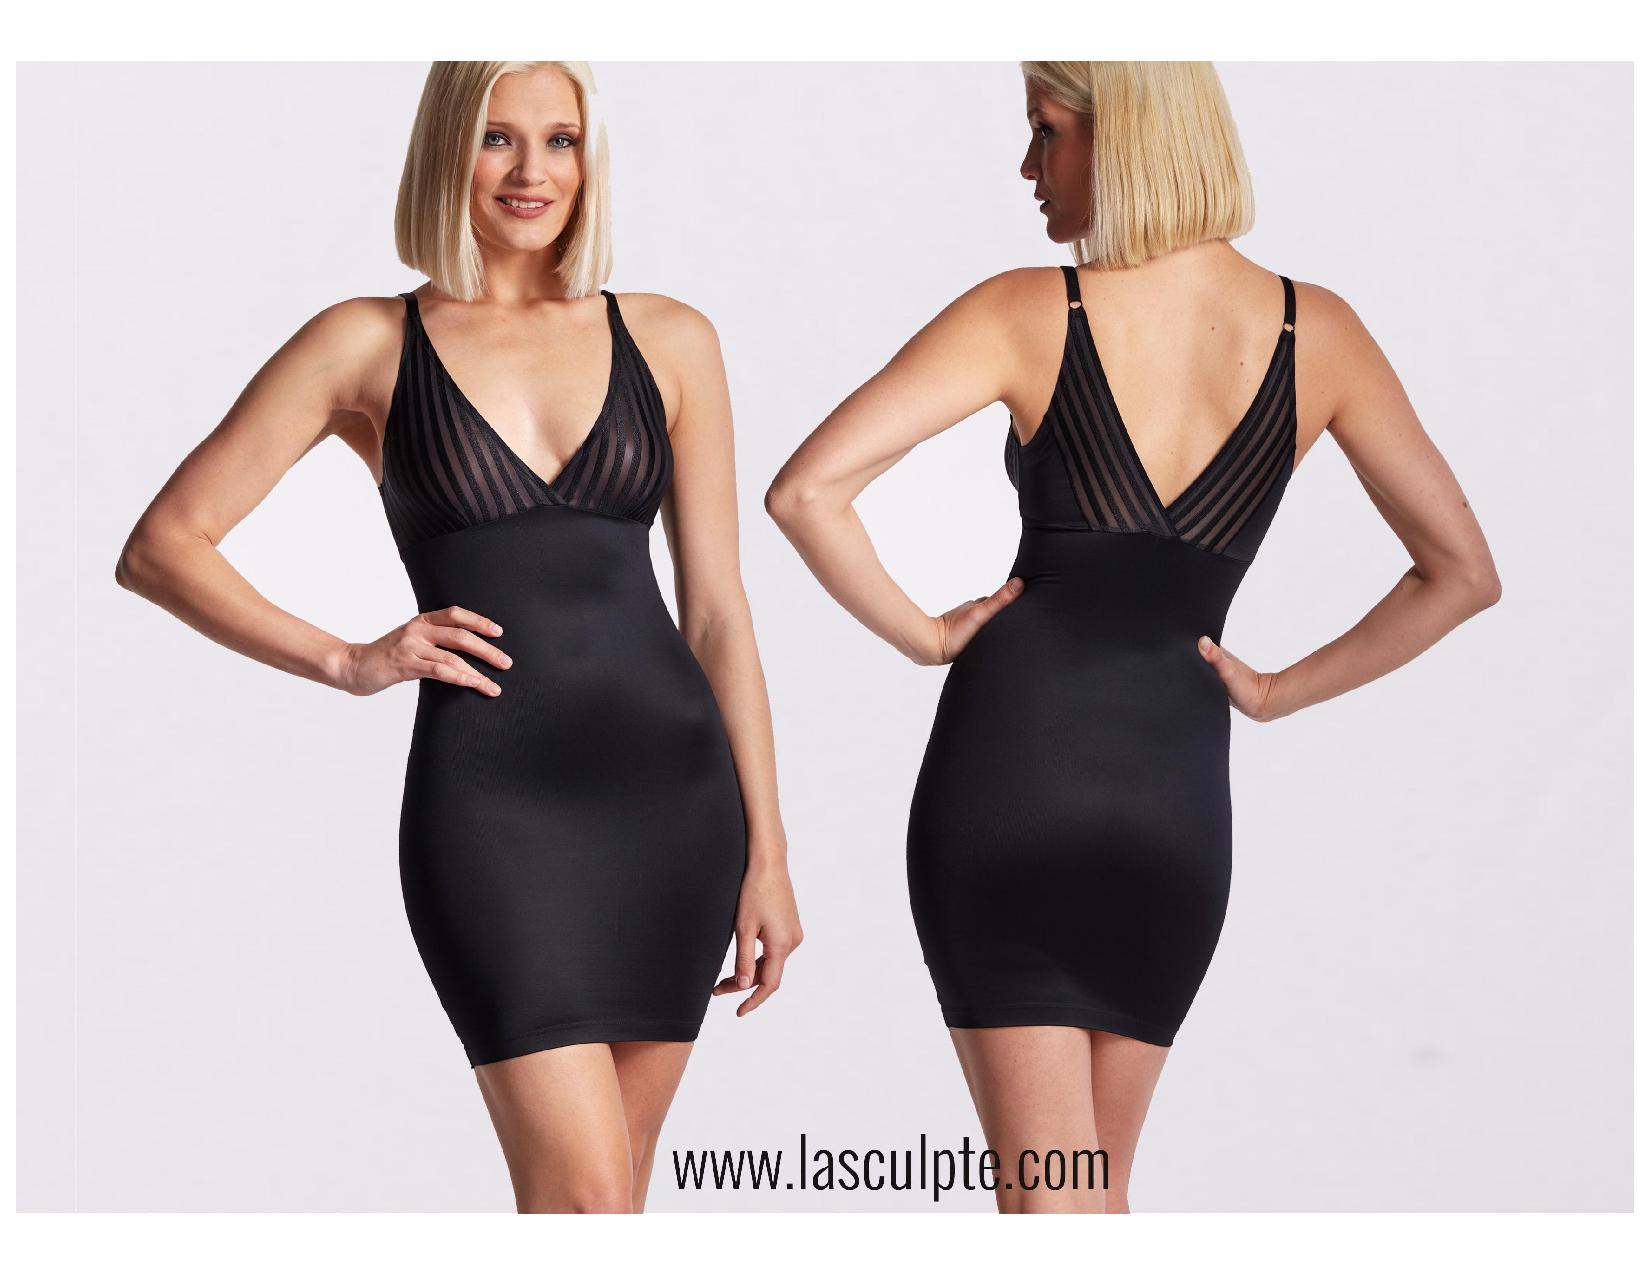 Lasculpte lookbook - Shapewear-page-004